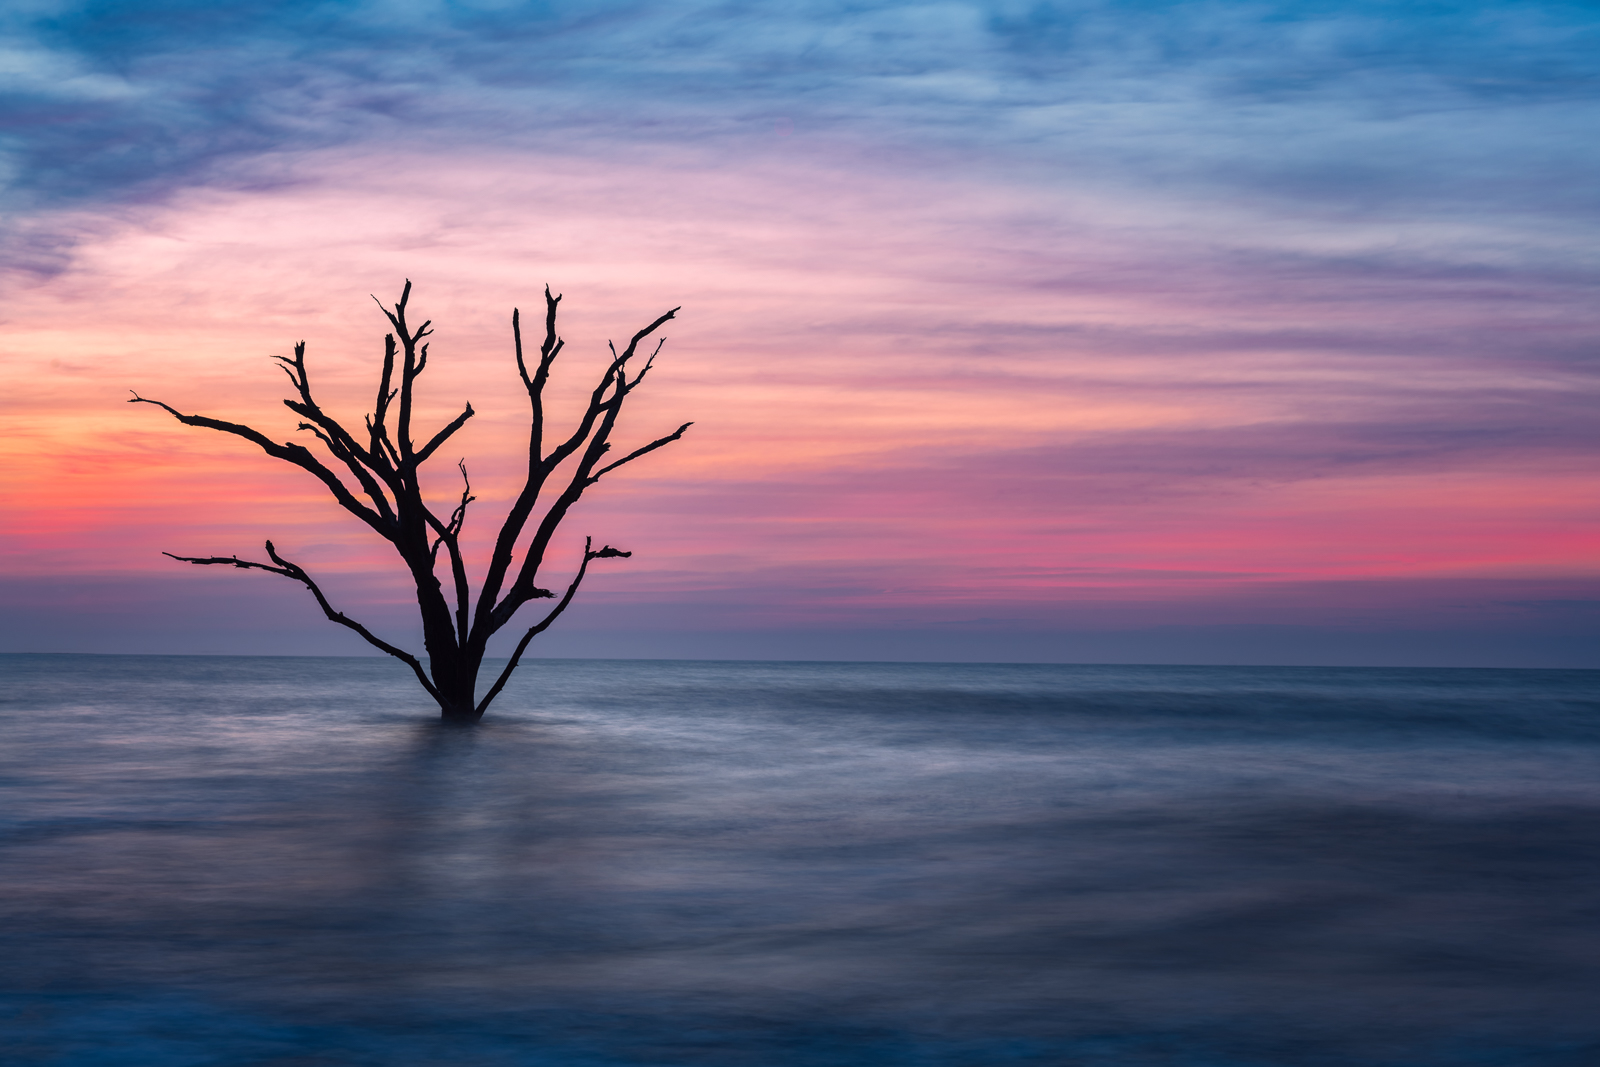 A lone Live Oak out in the rising tide of the Atlantic Ocean along the barrier island beach at Botany Bay.